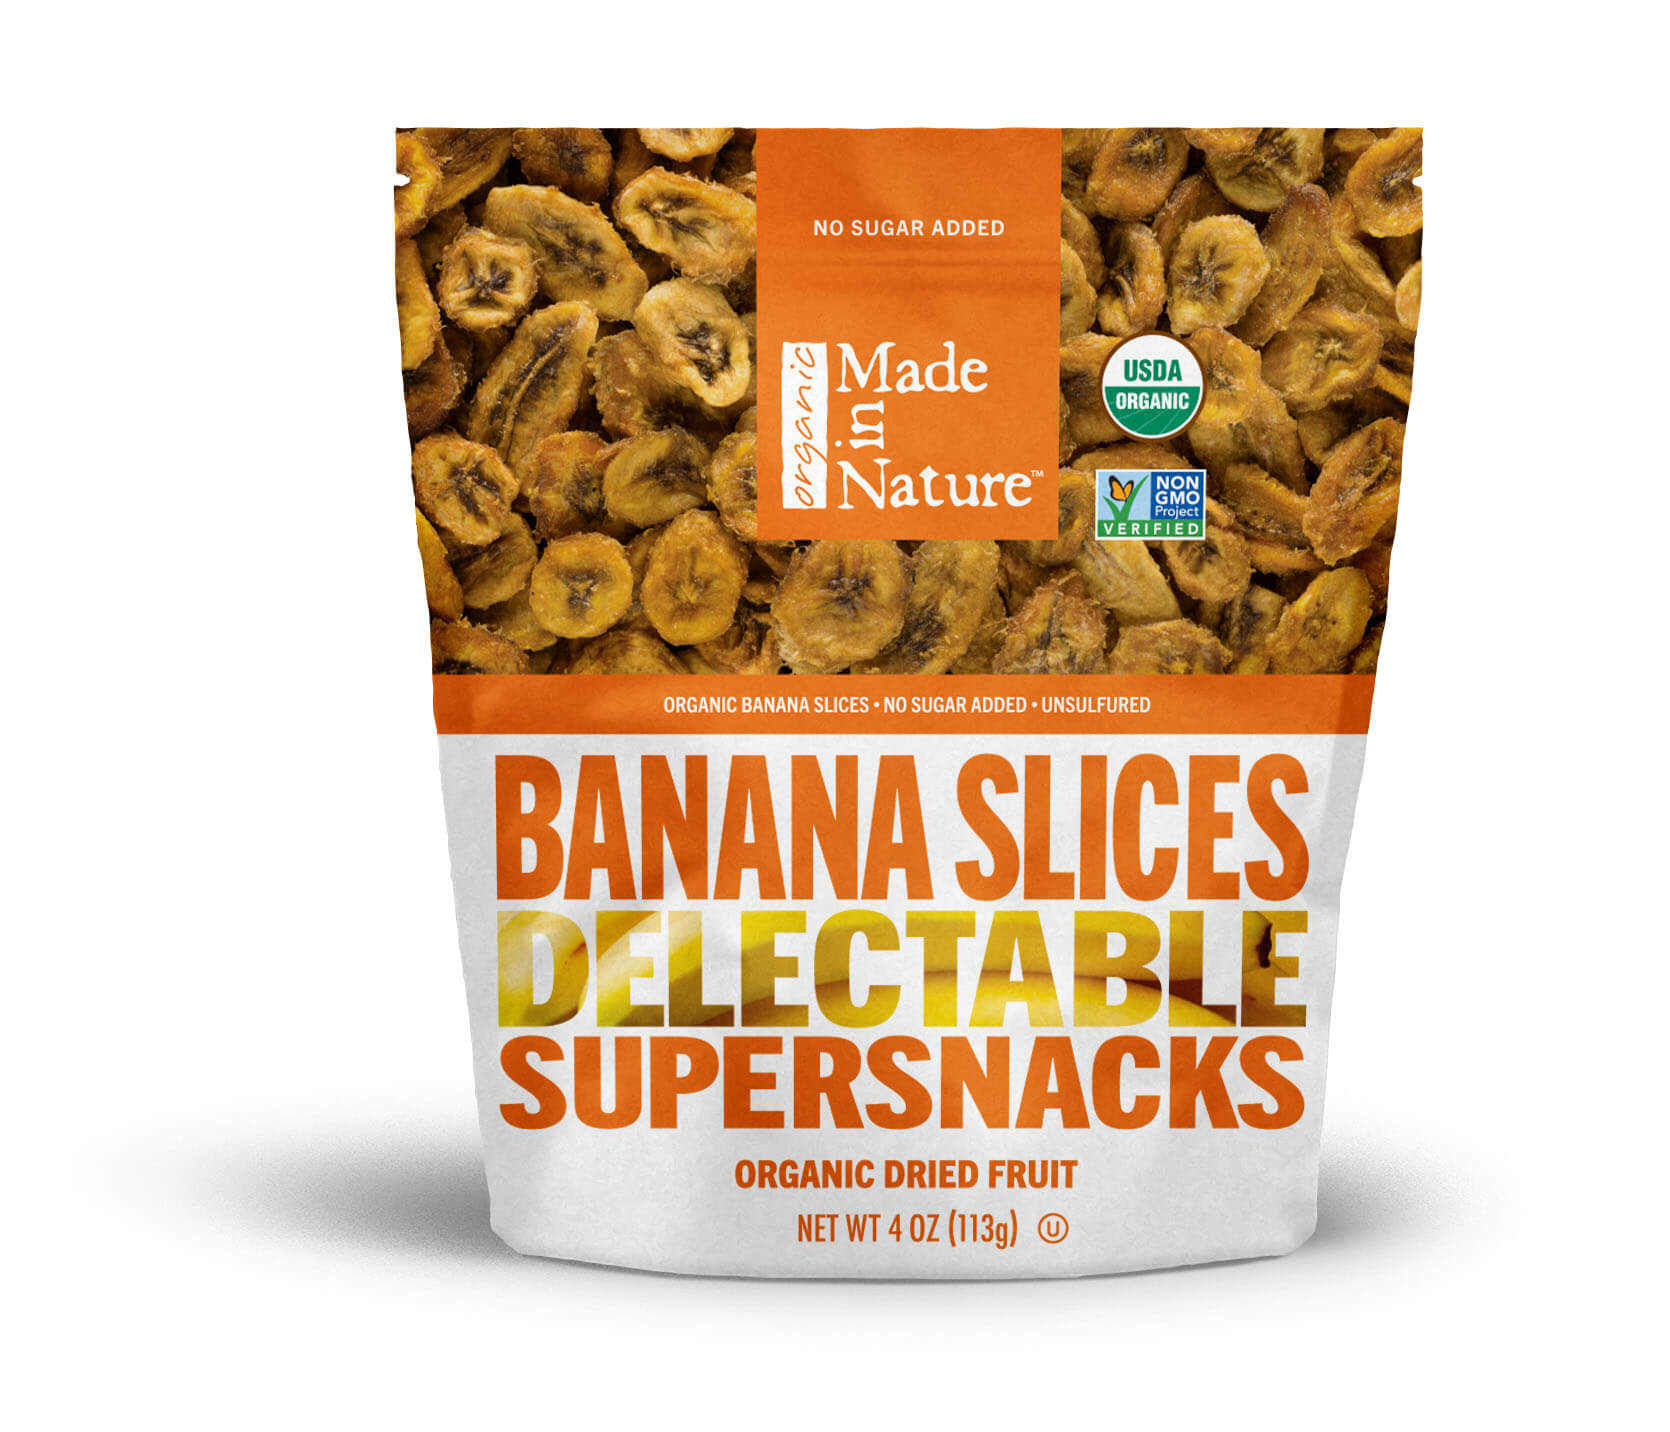 Made in Nature Organic Banana Slices 6 AIP Travel Snacks sarahkayhoffman.com